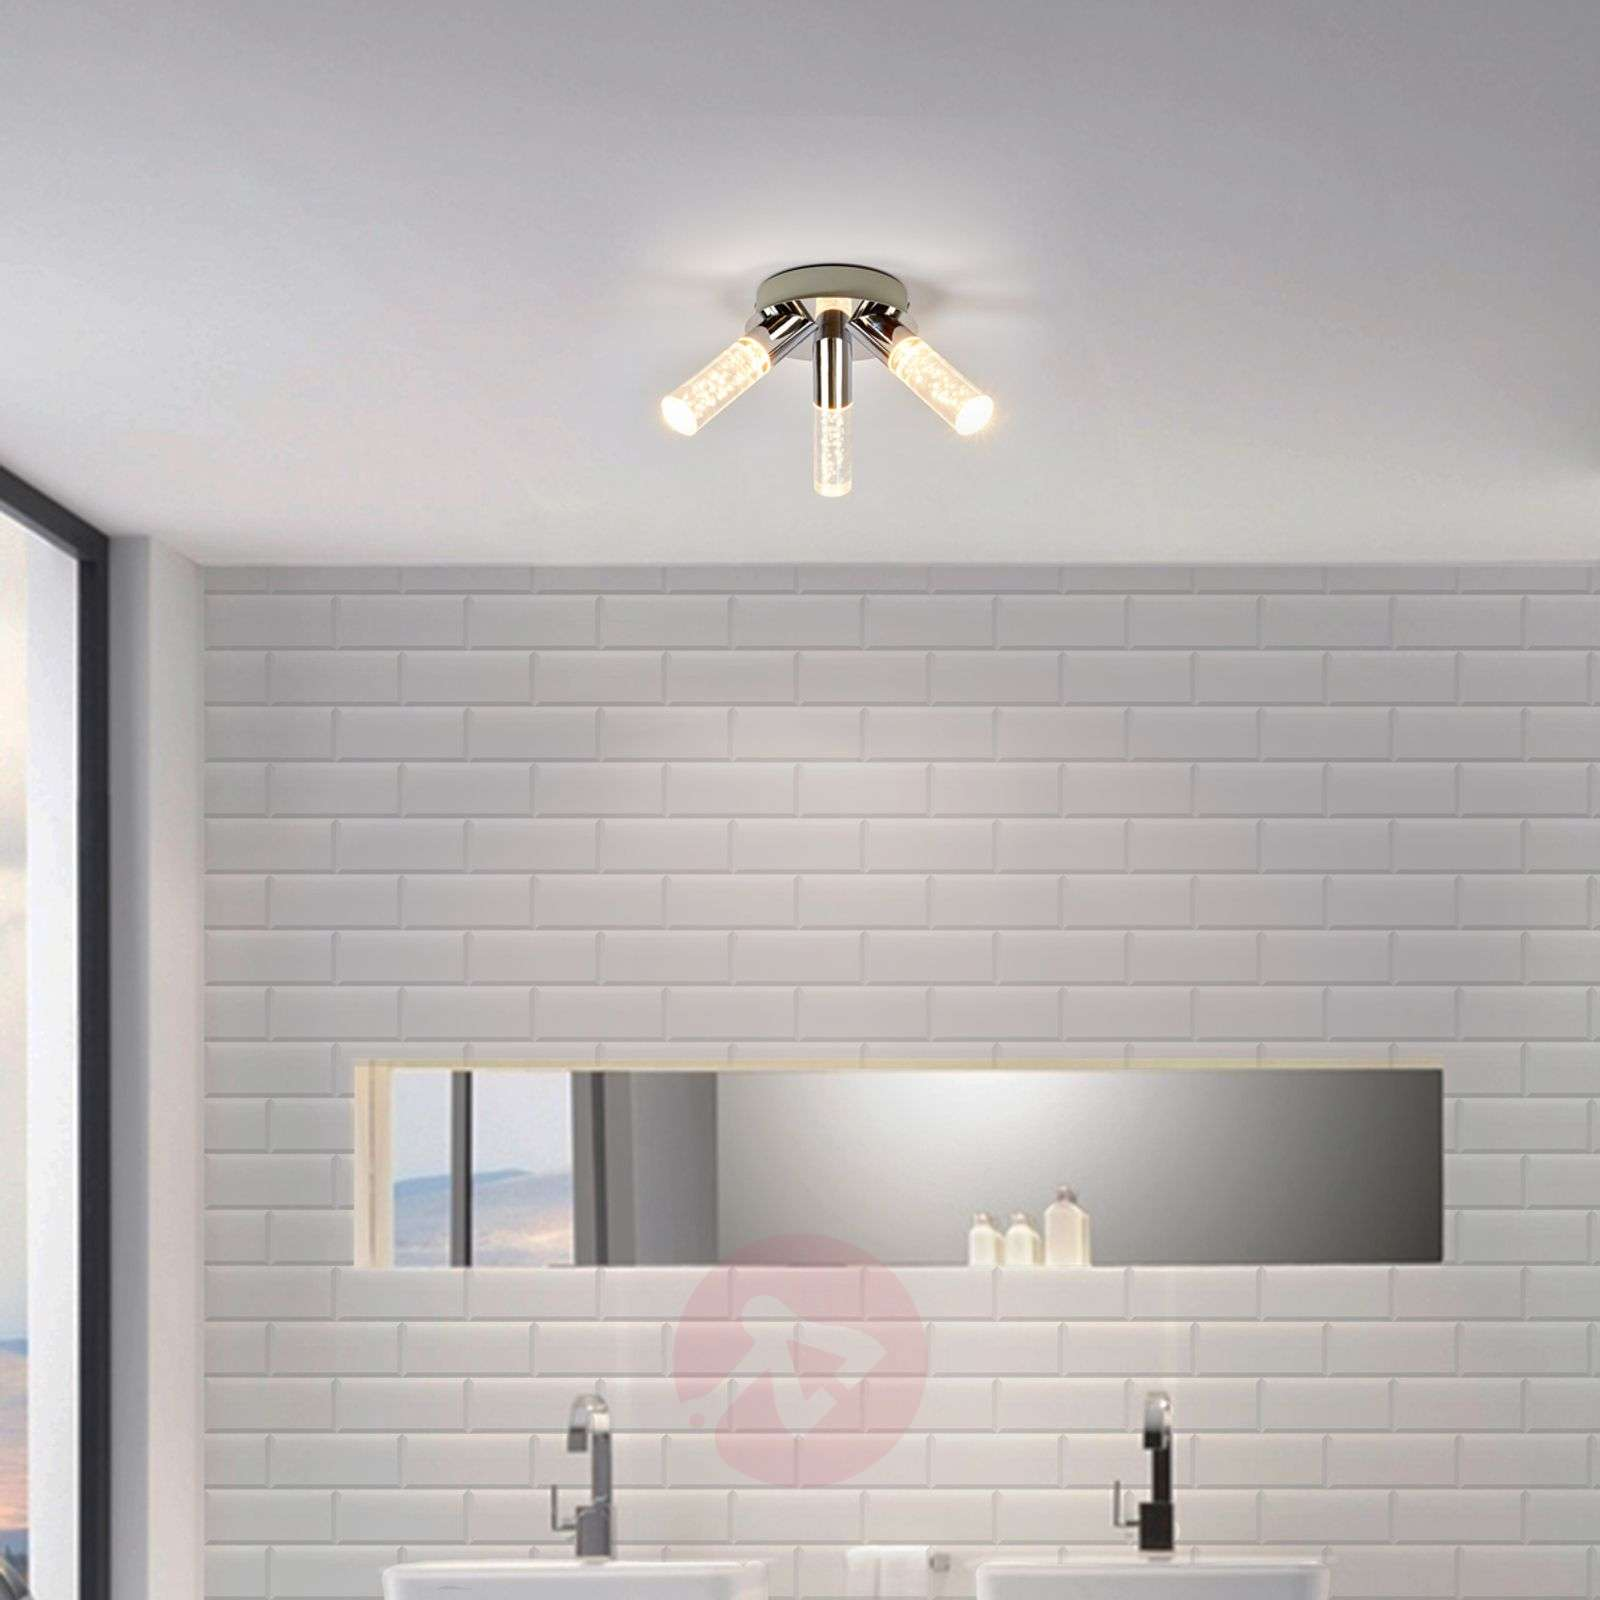 Light Duncan Bathroom Ceiling Light LED Lightsie - Bathroom celing